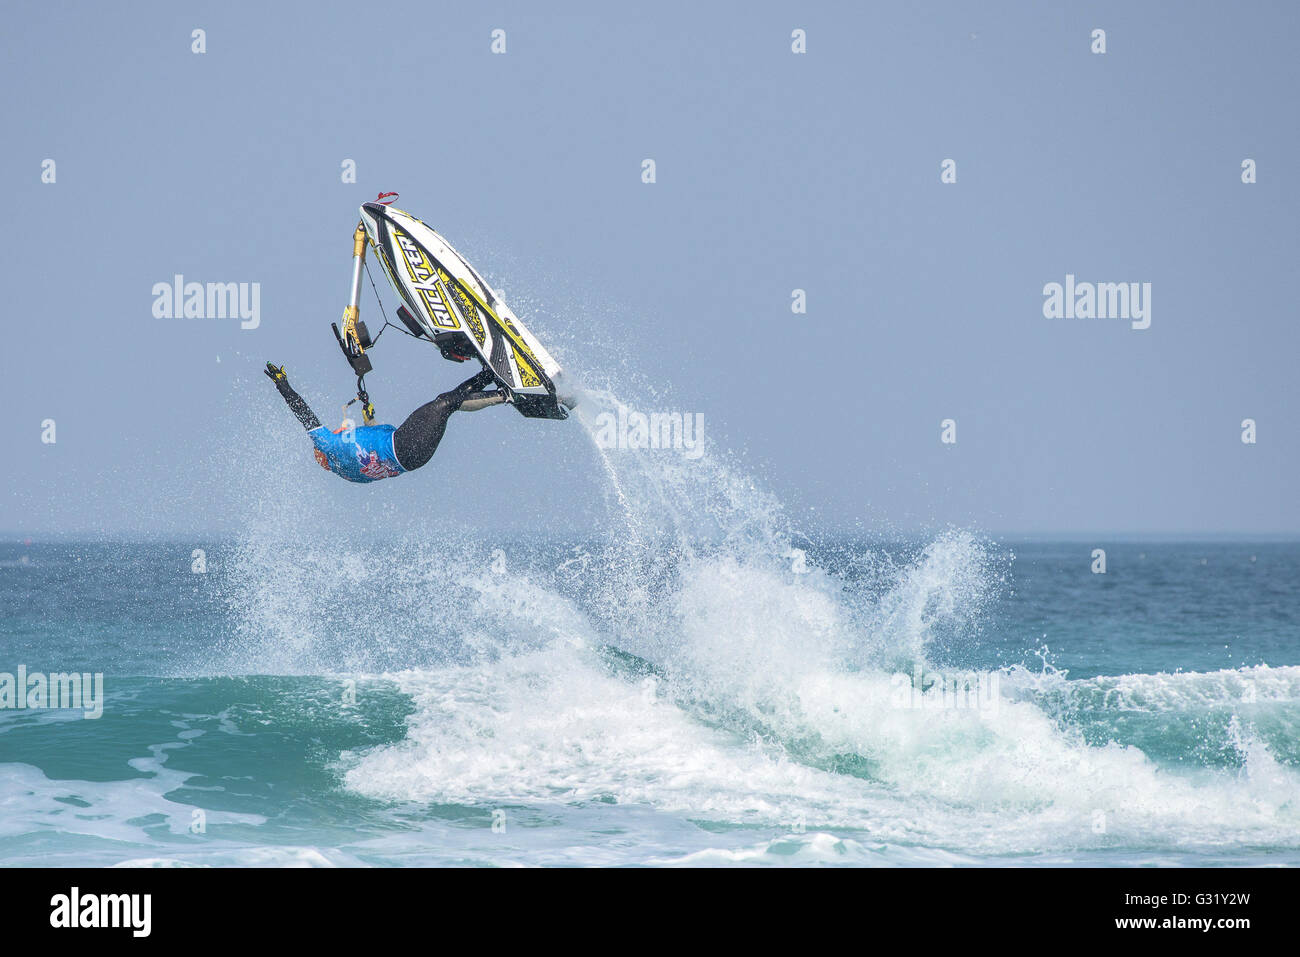 Fistral, Newquay, Cornwall. 6th June, 2016.  A spectacular stunt performed by a Jet-skier at the IFWA World Freeride - Stock Image